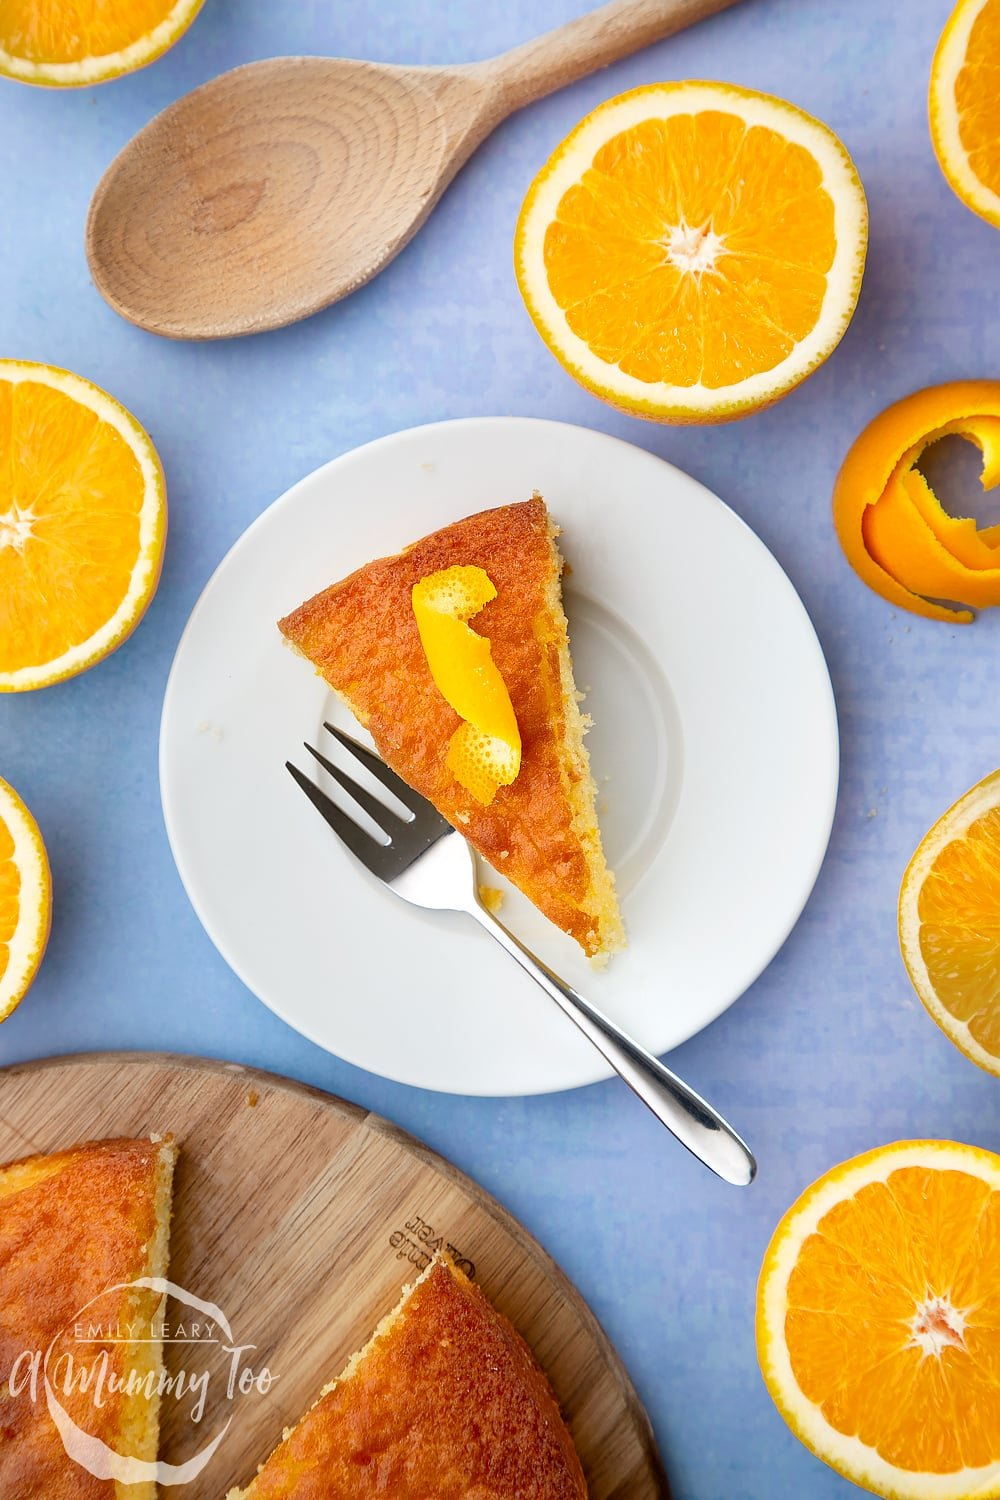 A slice of orange drizzle cake served on a small white plate. A curl of orange peel sits on top of the cake. A cake fork rests on the plate.